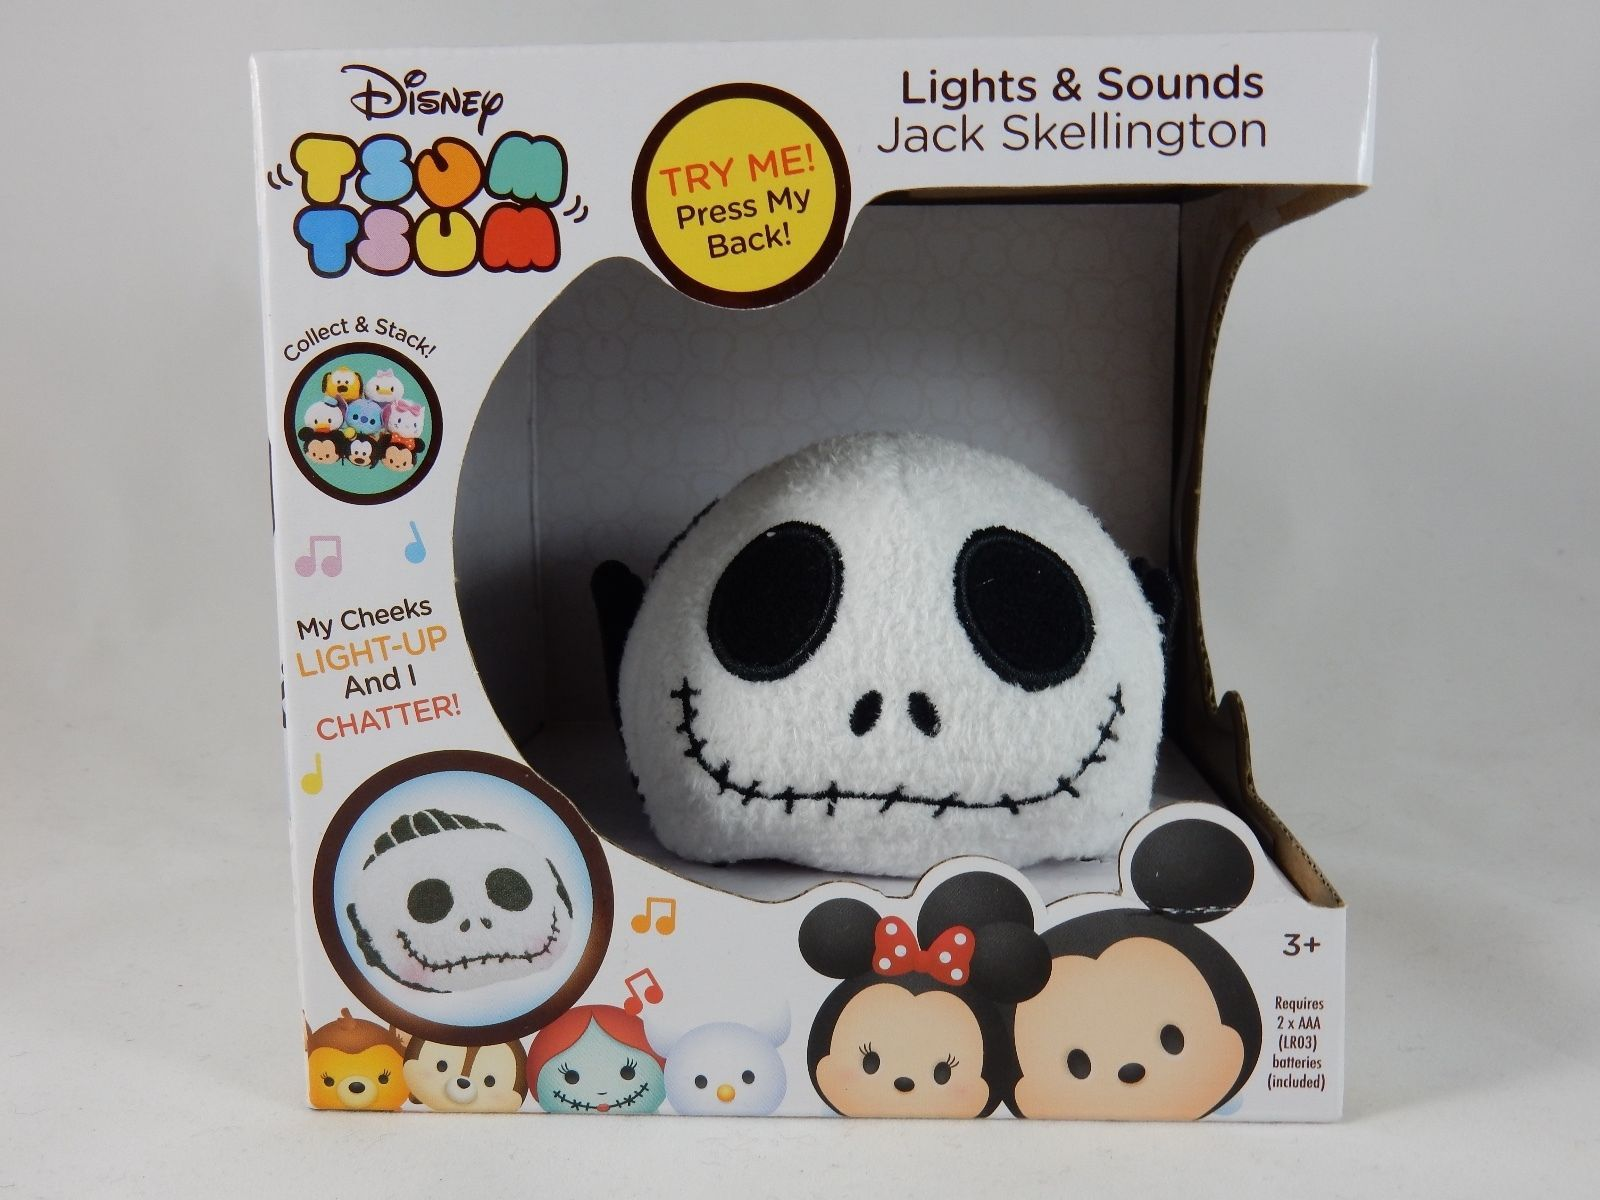 Disney Tsum Tsum Nightmare Before Christmas and 45 similar items